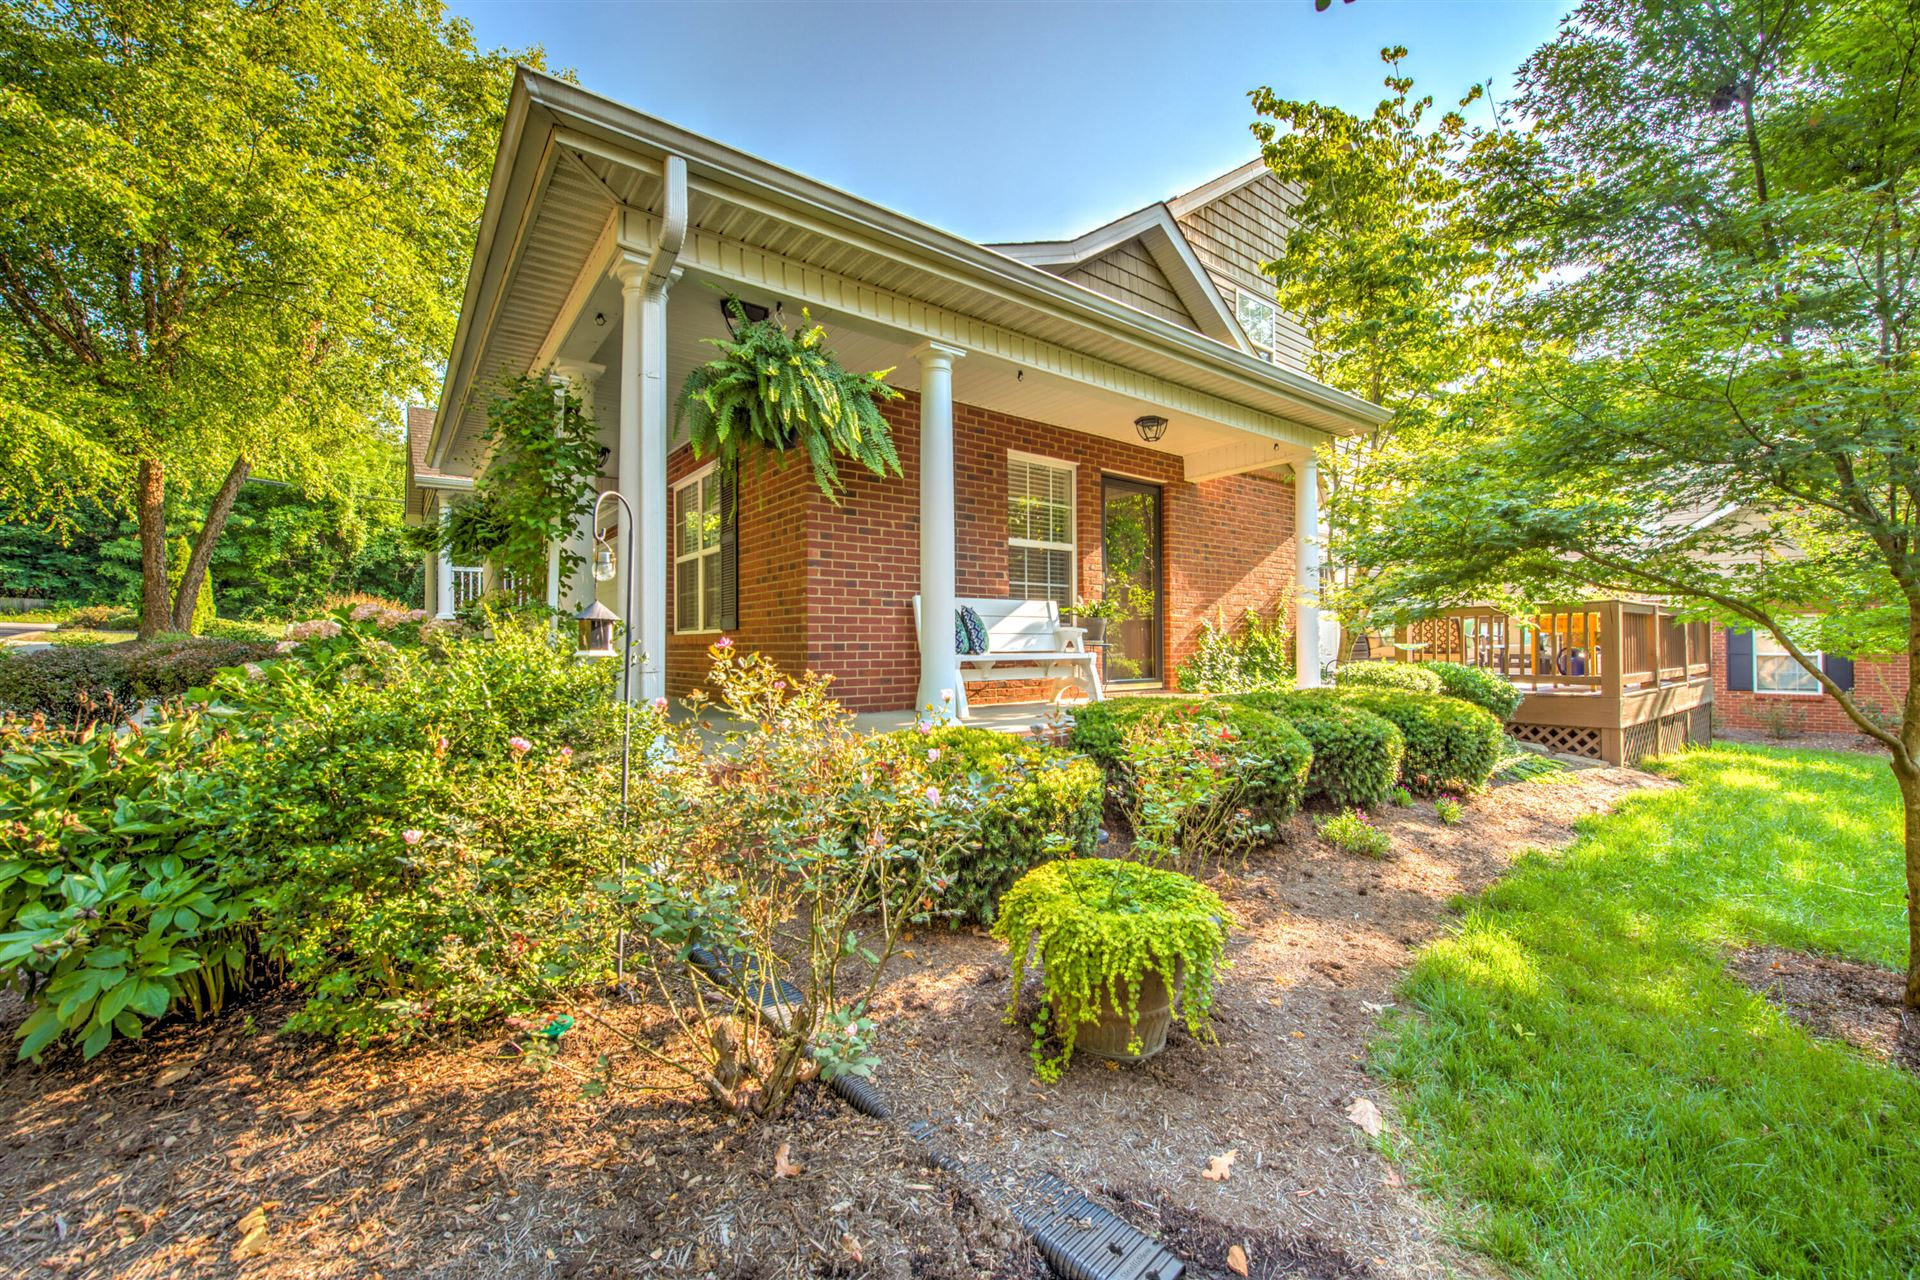 Photo of 10965 Woodford Bend Way, Knoxville, TN 37934 (MLS # 1167823)